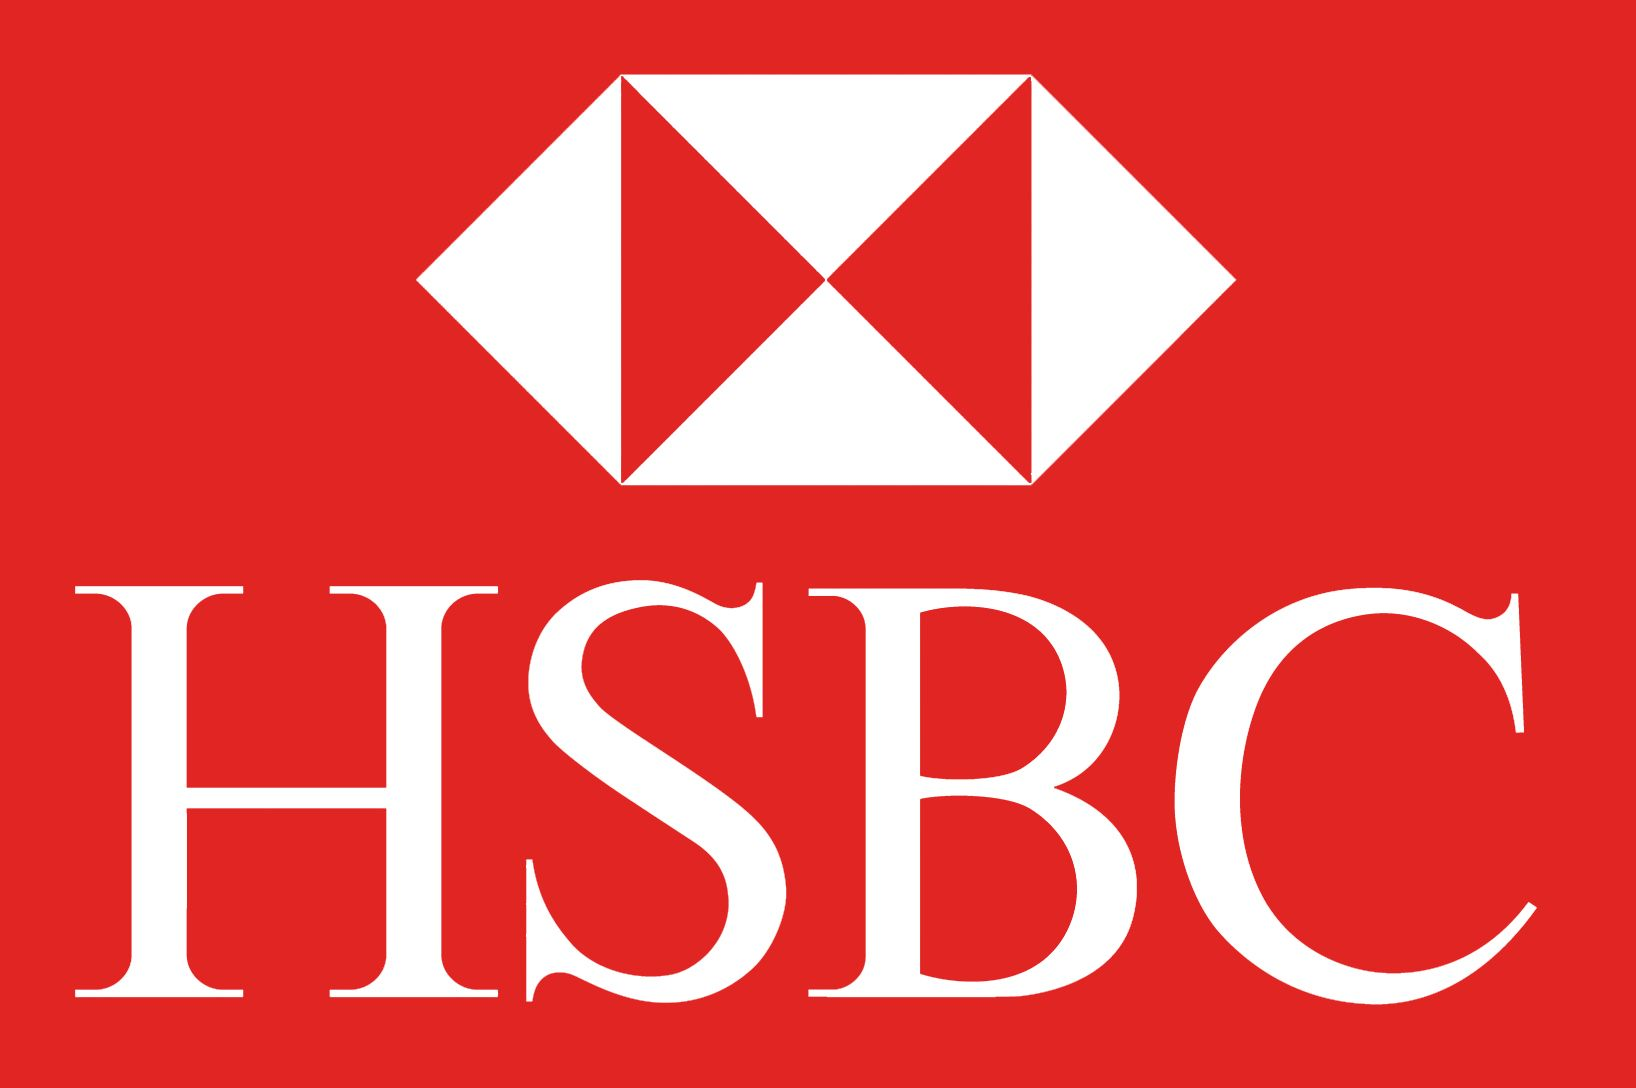 HSBC Logo - HSBC Logo, Hongkong and Shanghai Banking Corporation symbol